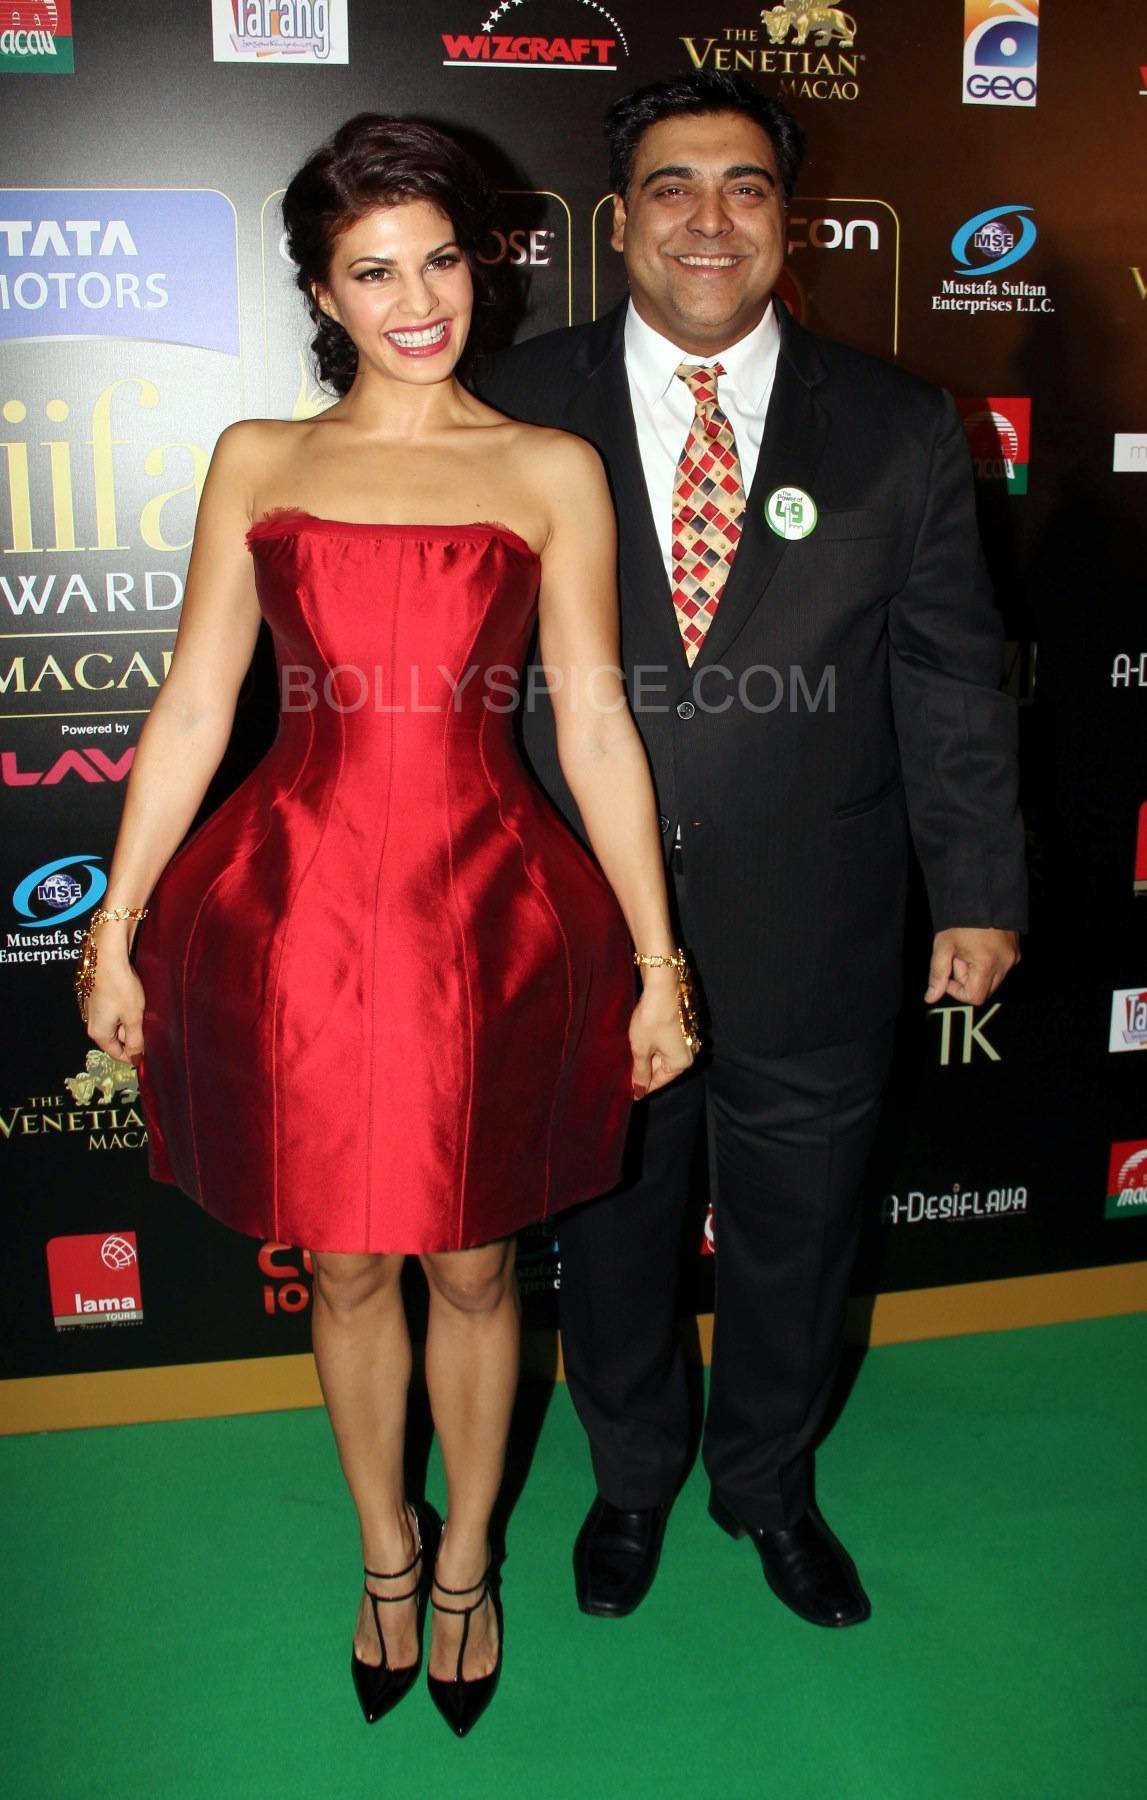 Jacquline Fernandez and Ram Kapoor at IIFA Rocks Green carpet